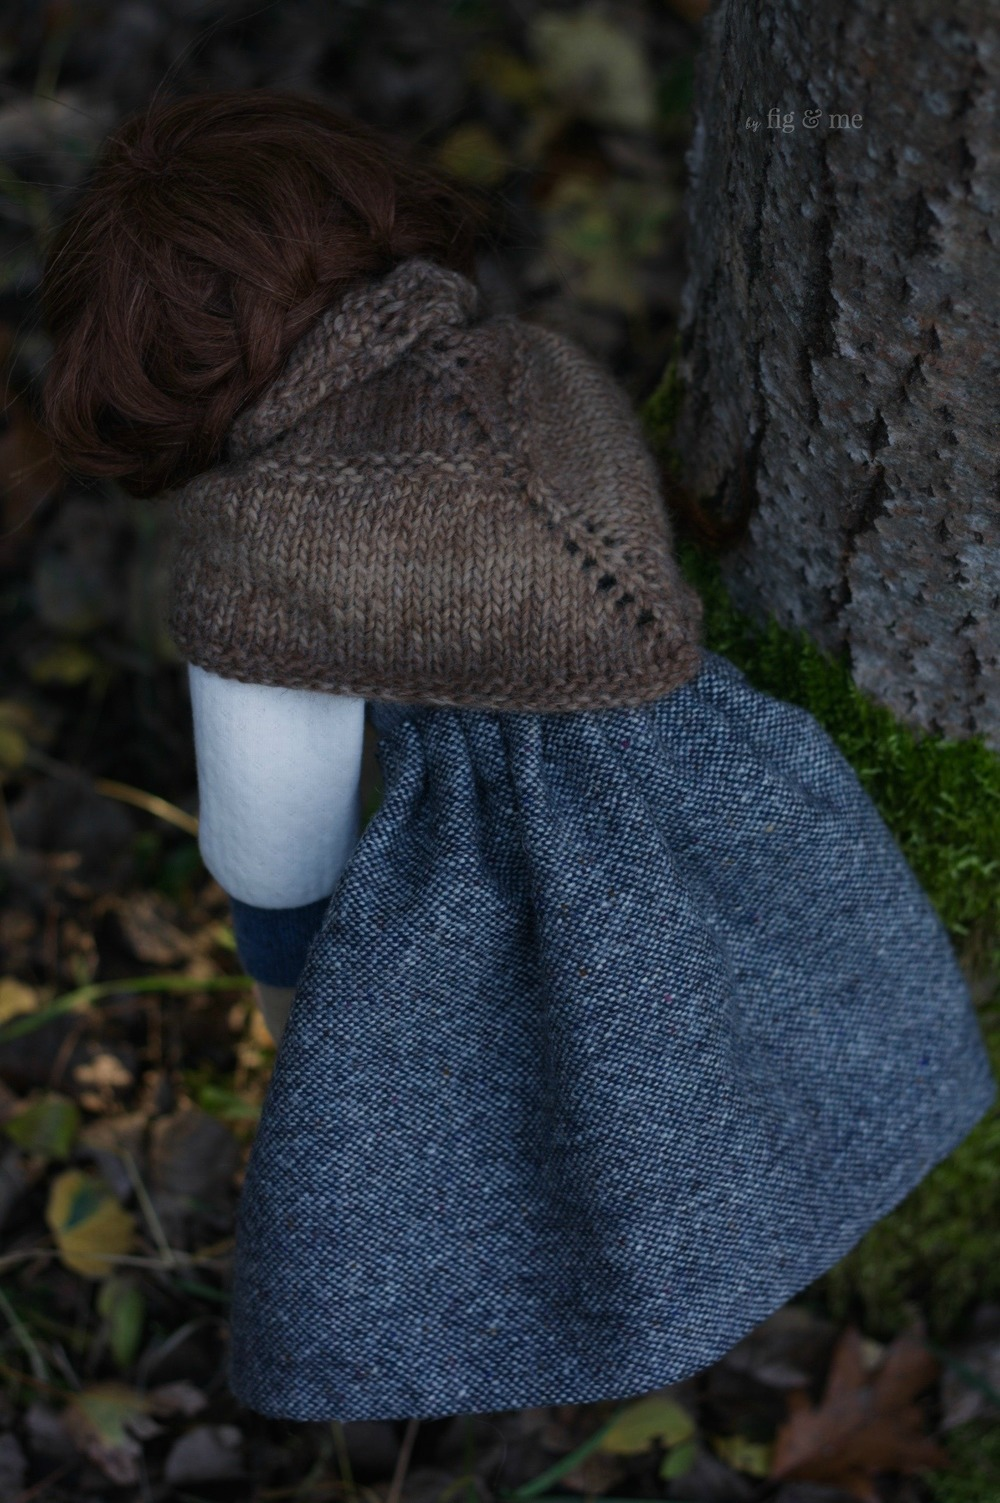 Skye picking wood for the fire, a natural fiber art doll by Fig and me.